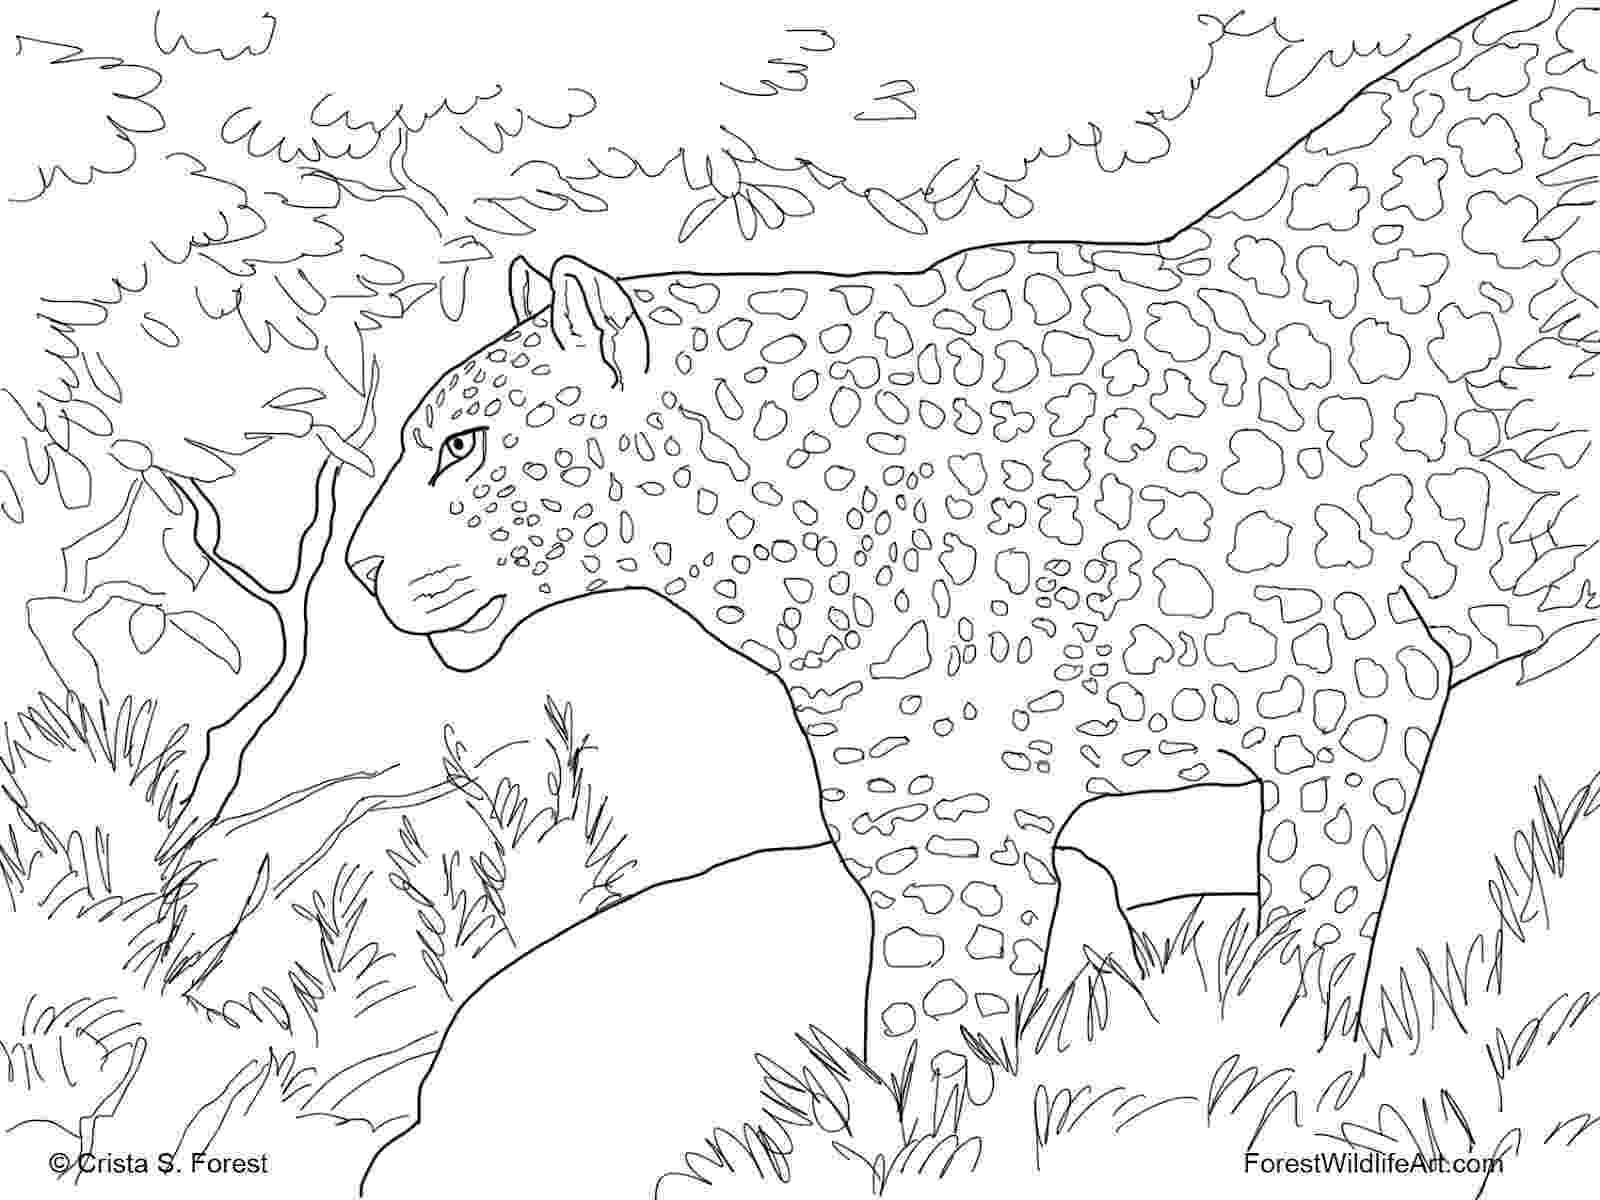 forest coloring sheets forest coloring pages download and print forest coloring sheets forest coloring